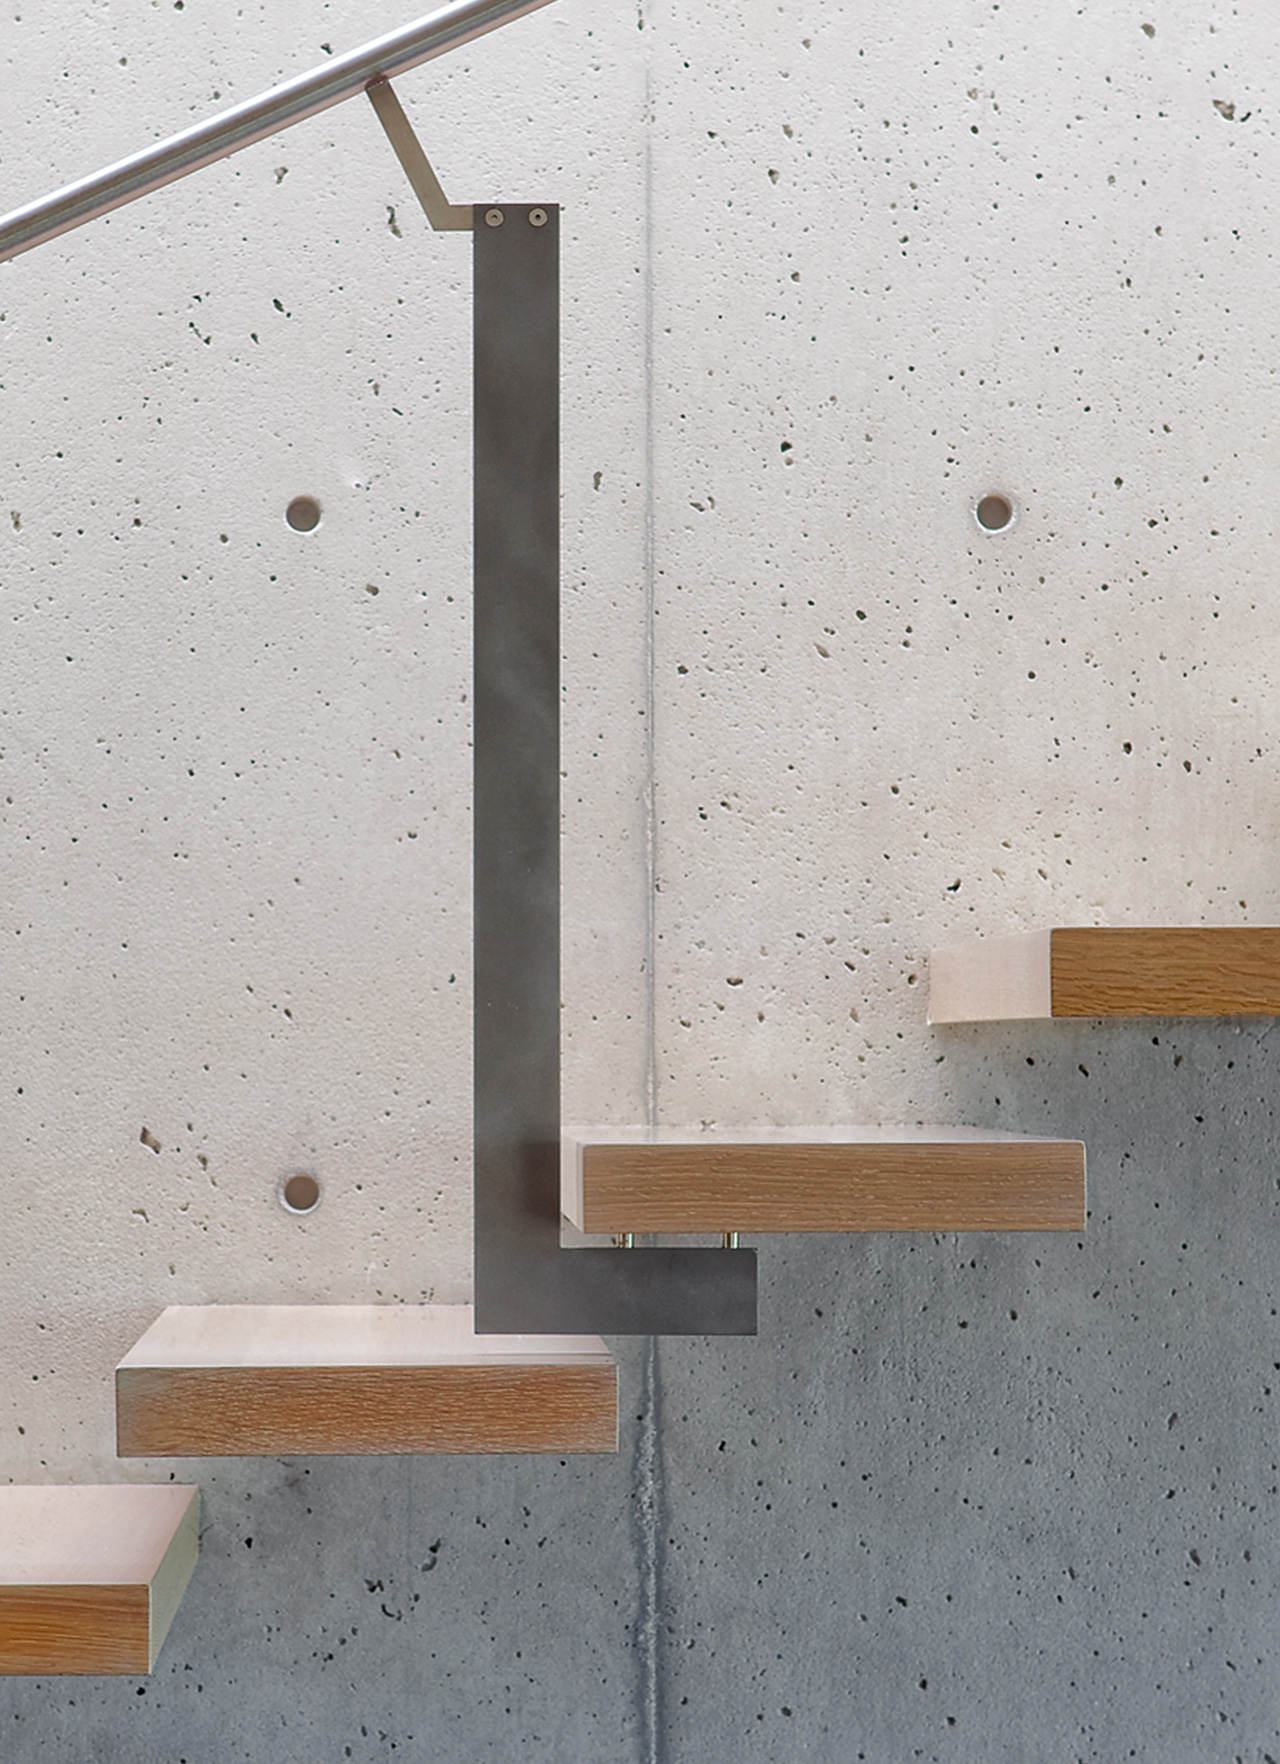 Floating wood stairs against concrete wall.